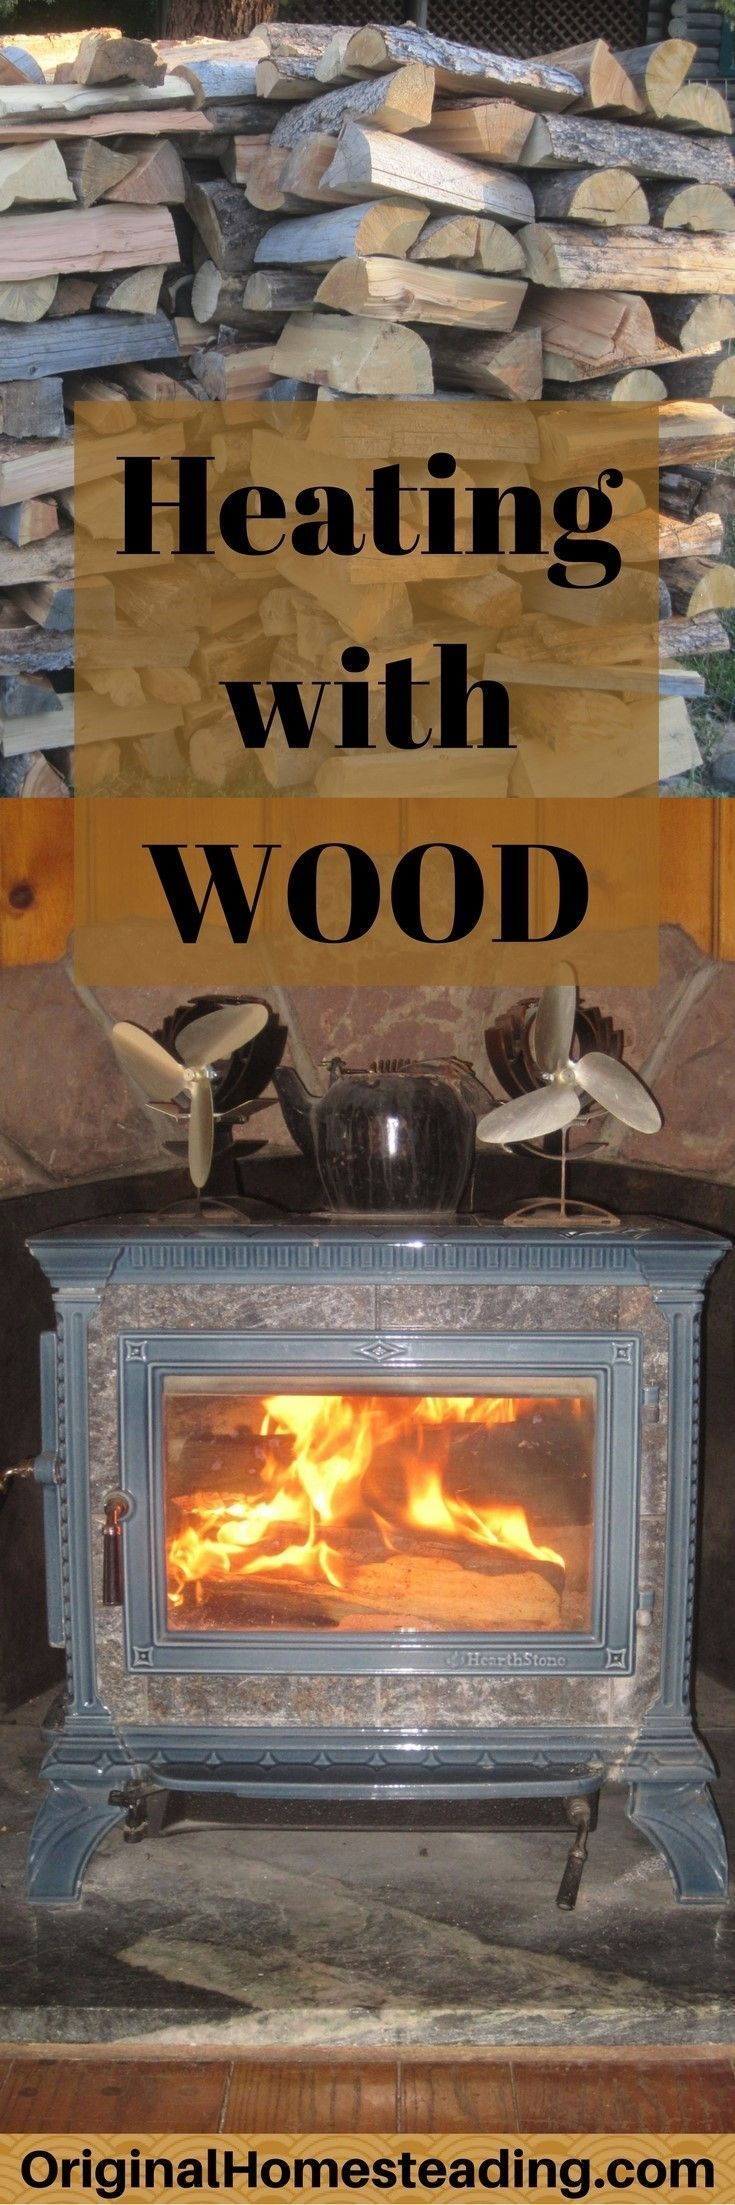 Learn How To Make The Best Homemade Fire Starter For Your Woodstove Or Fireplace